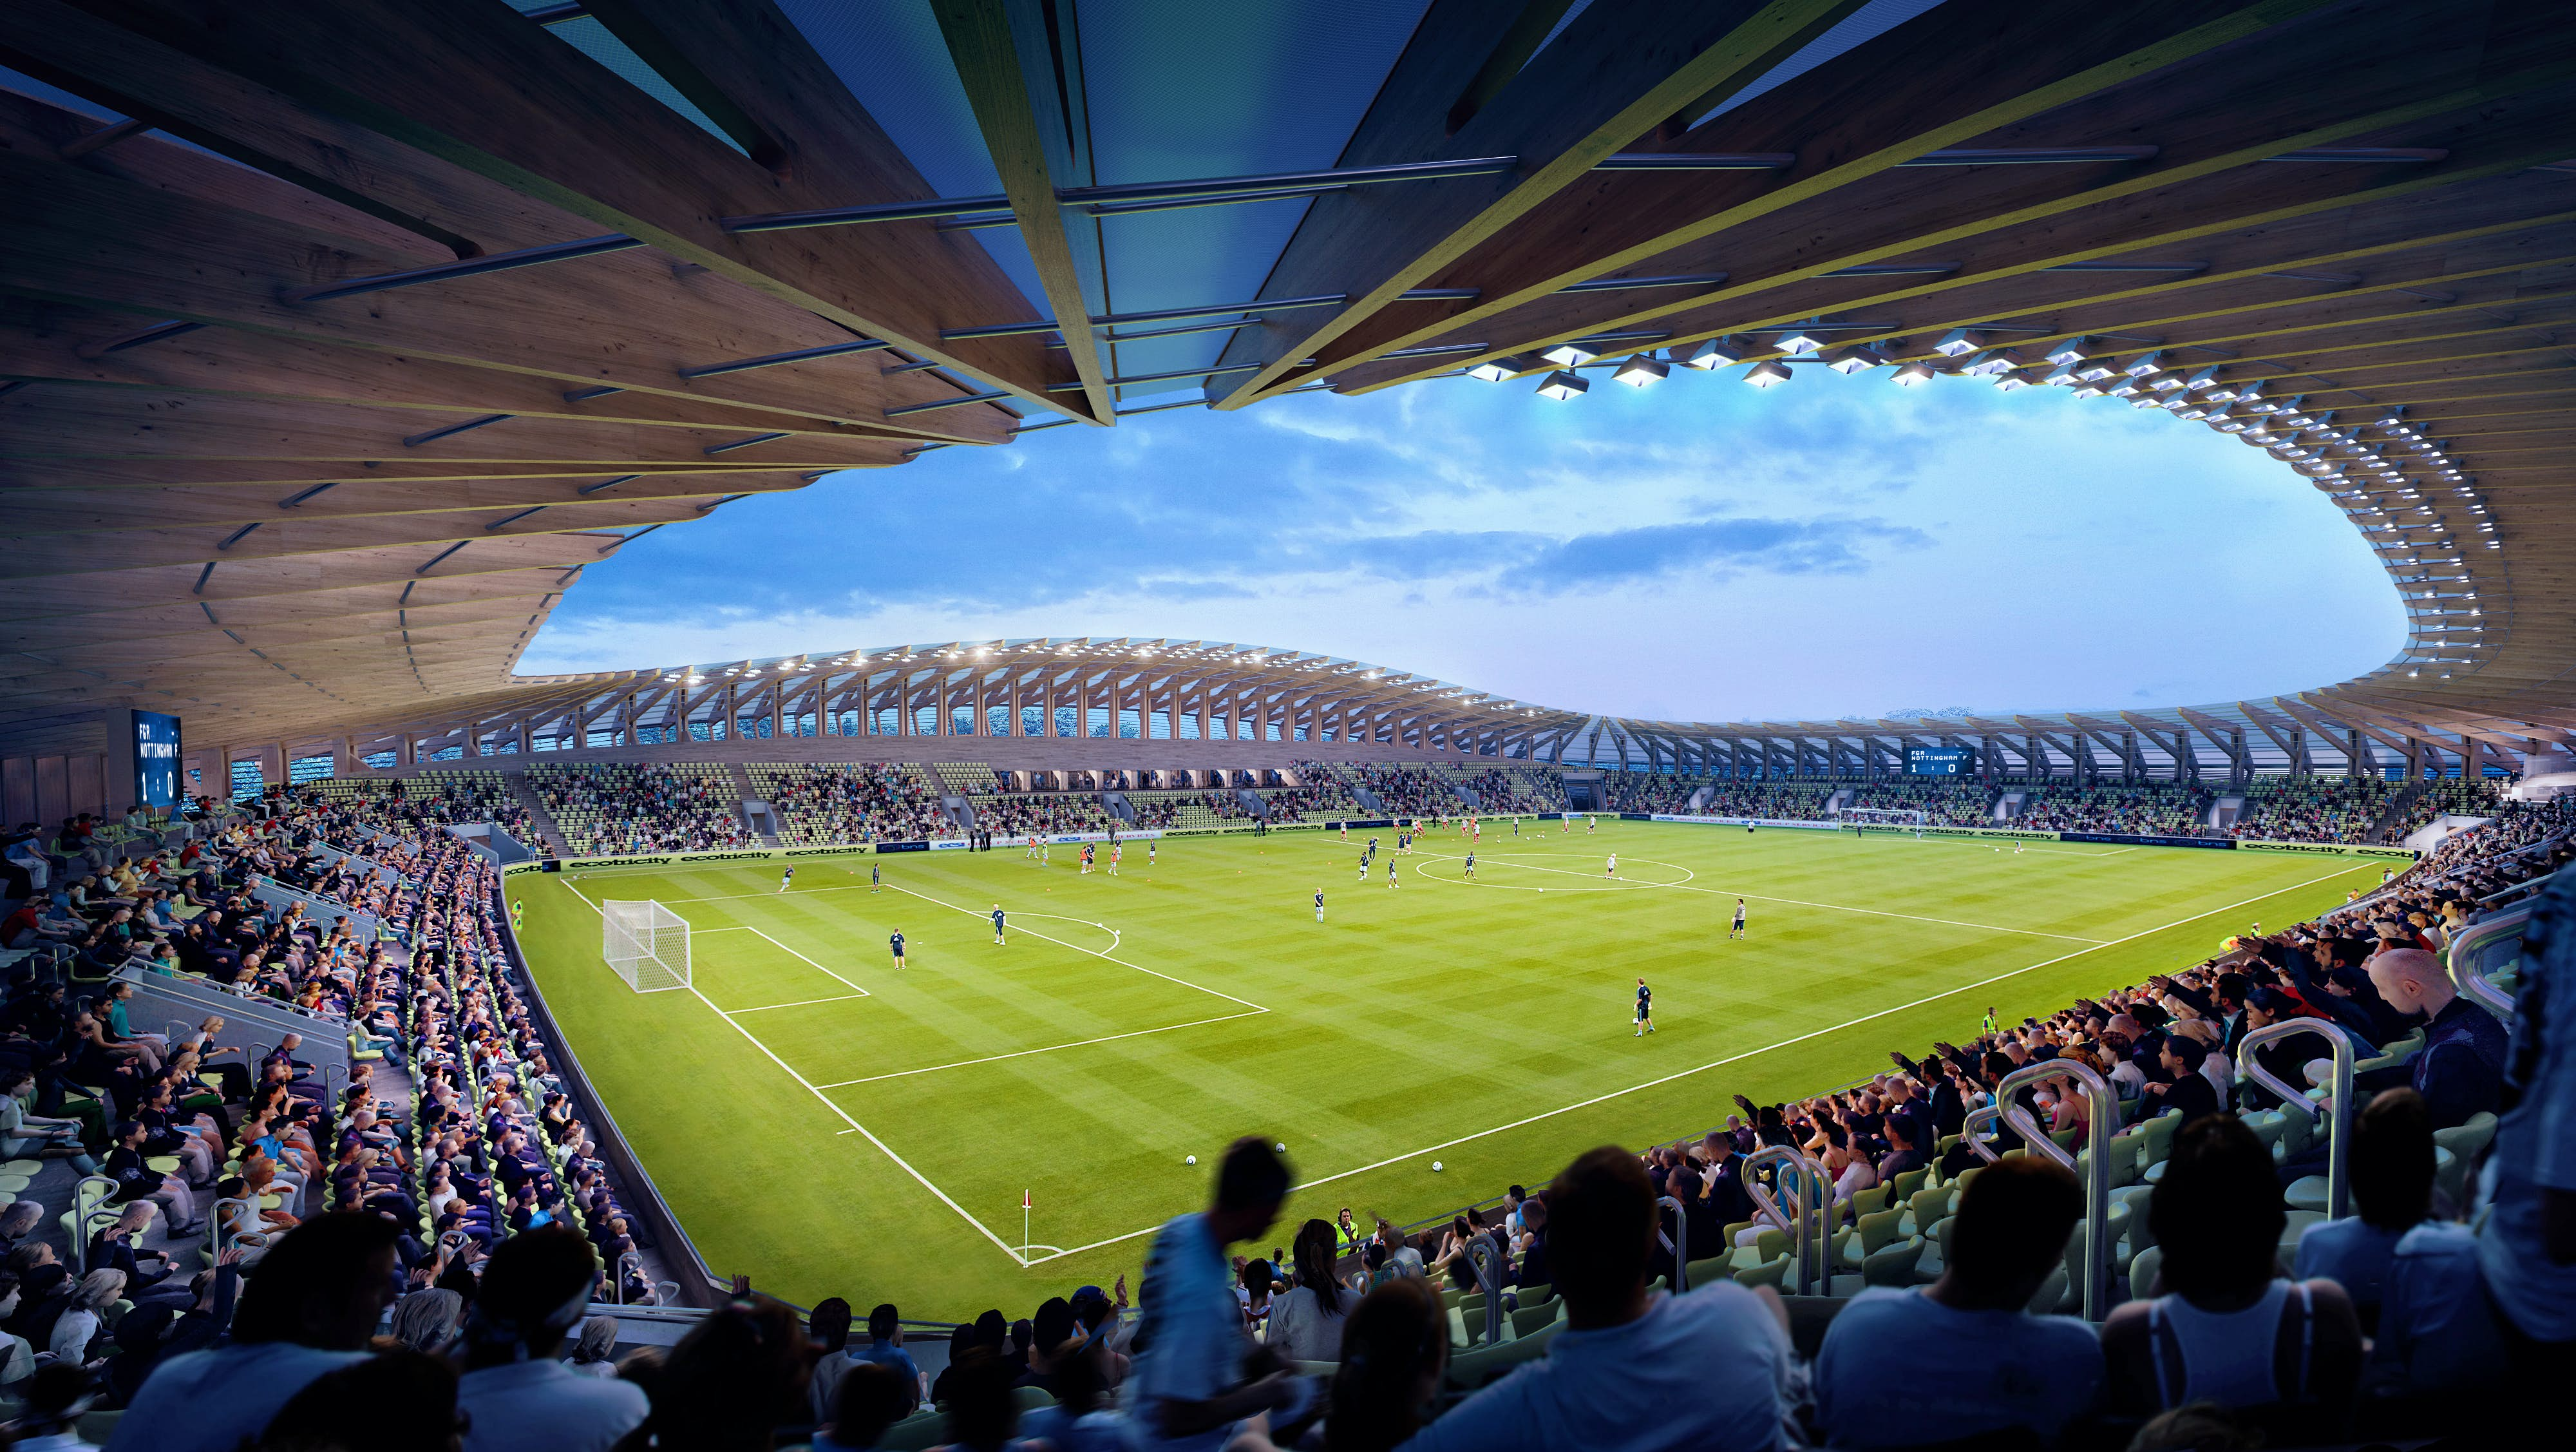 A rendering of the pitch of the stadium